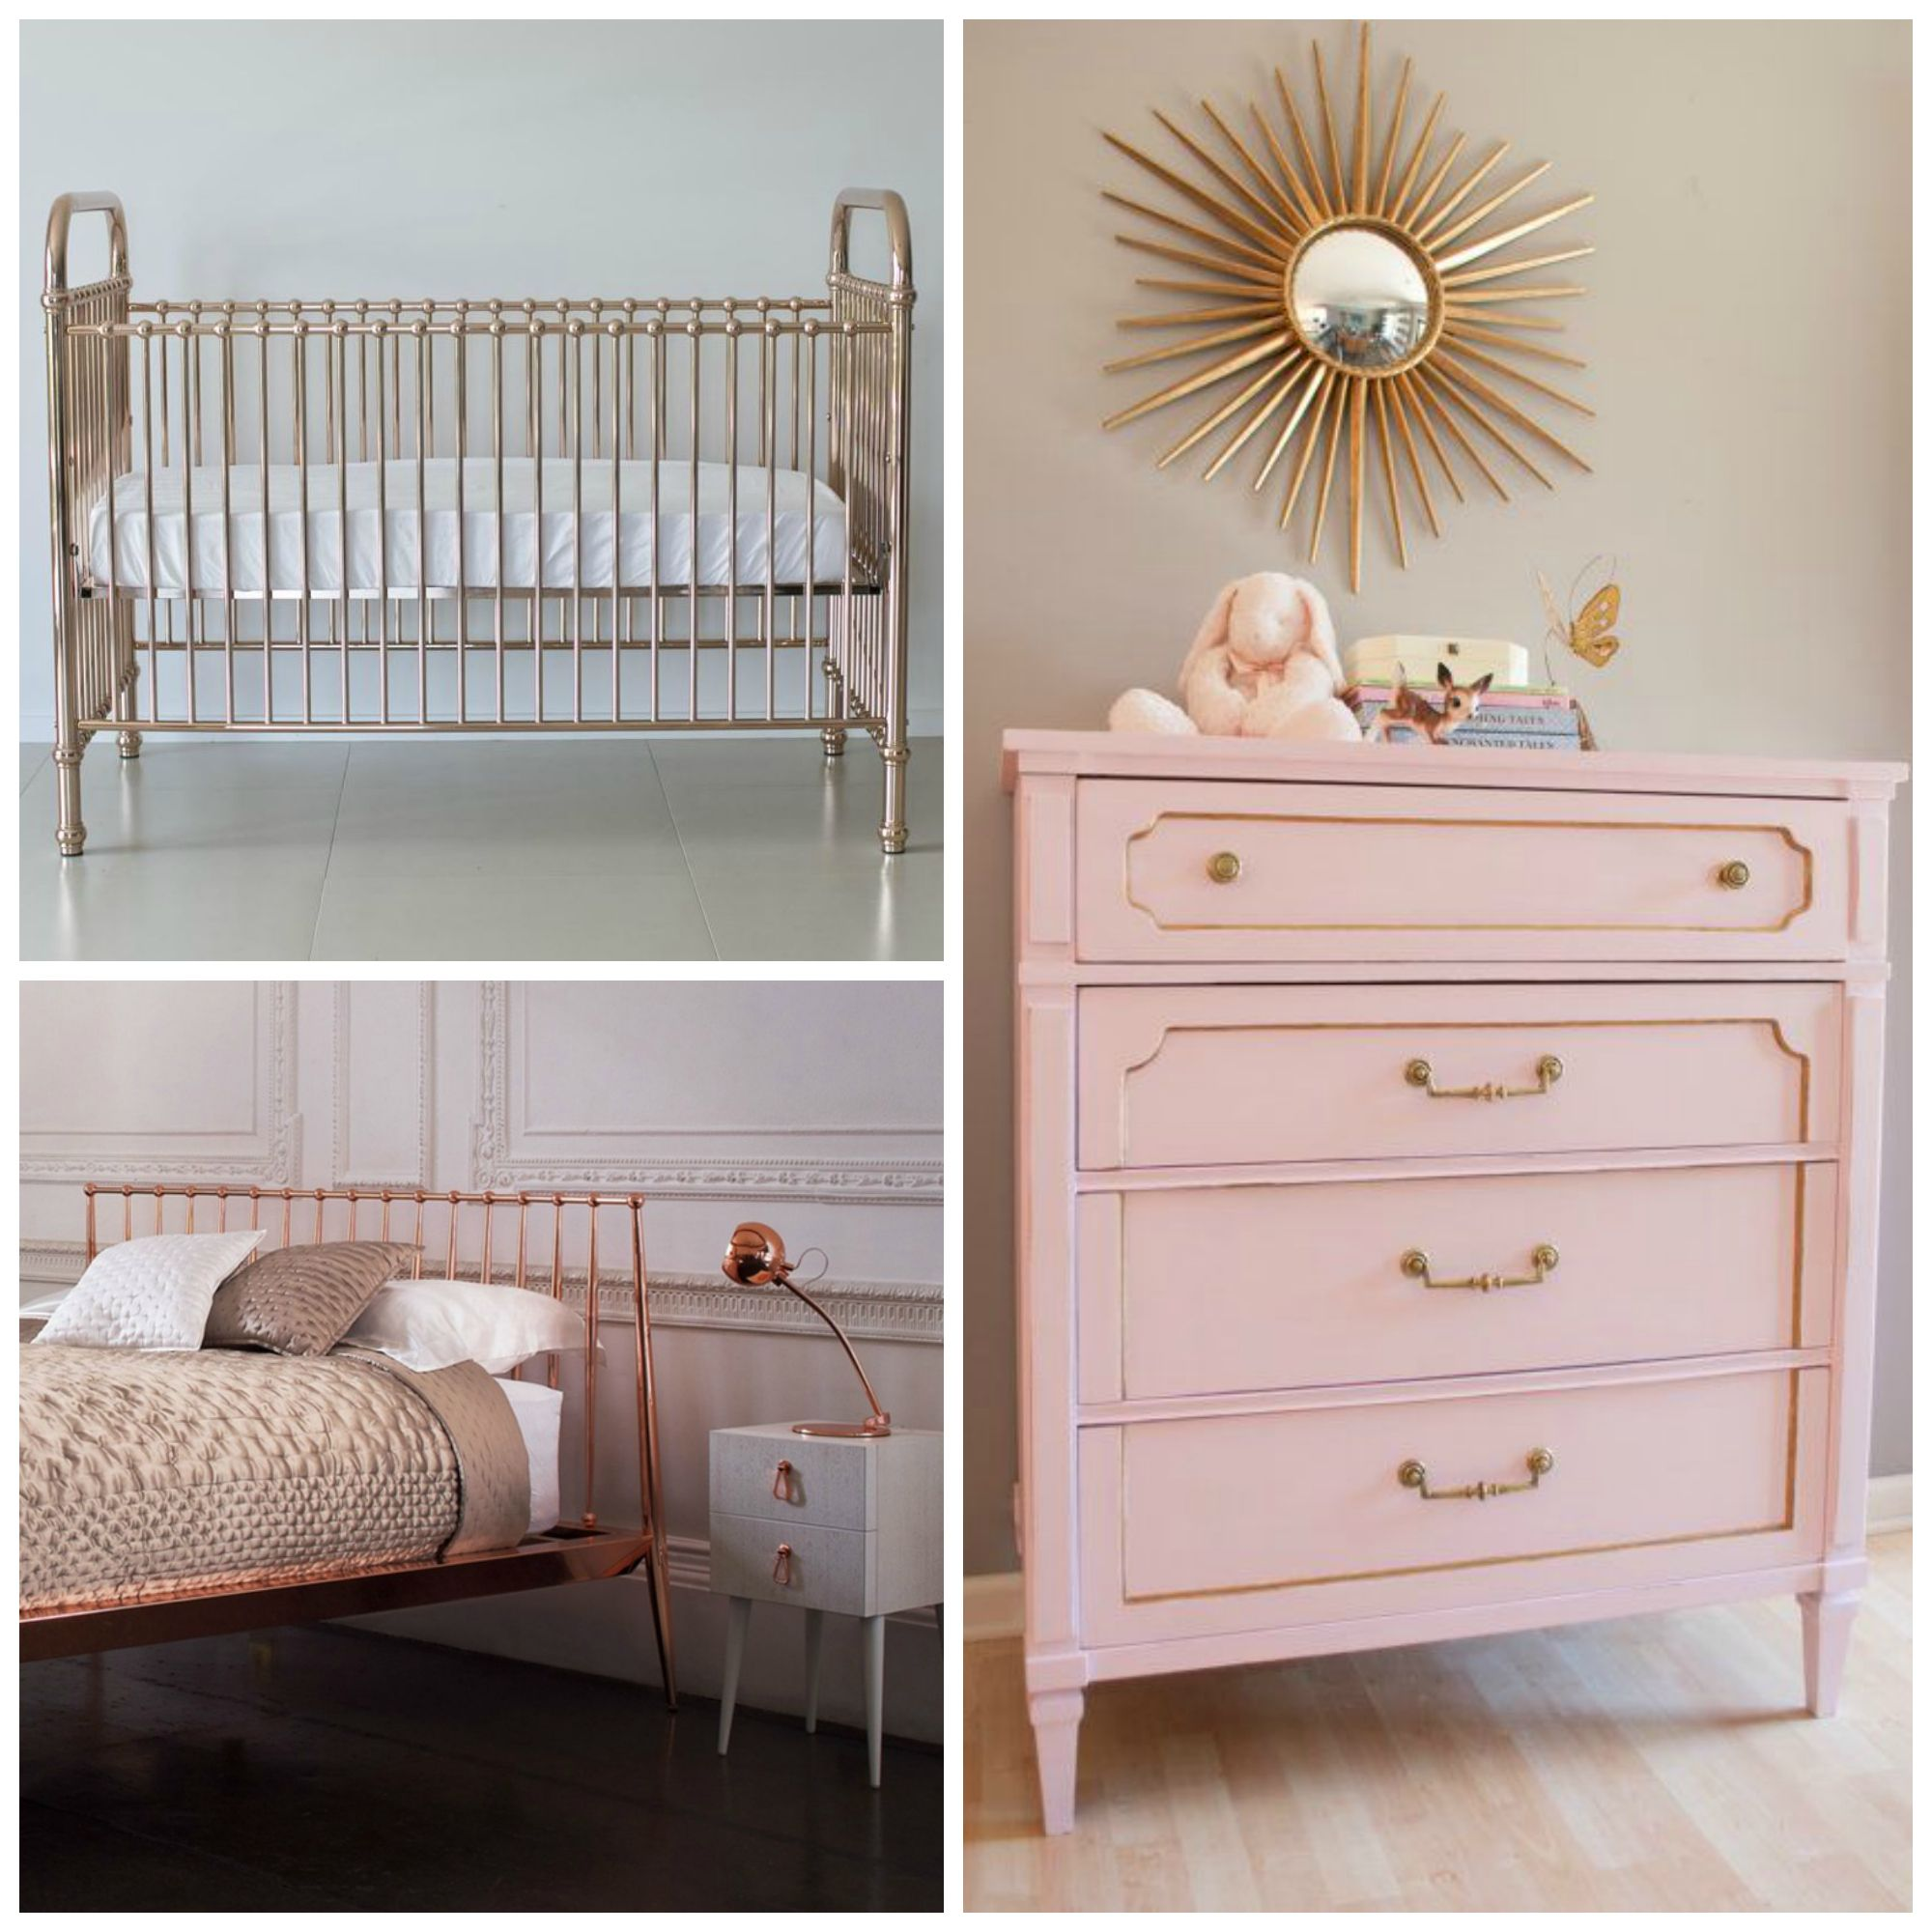 Rose Gold in the Bedroom pics and where to prettyprudent